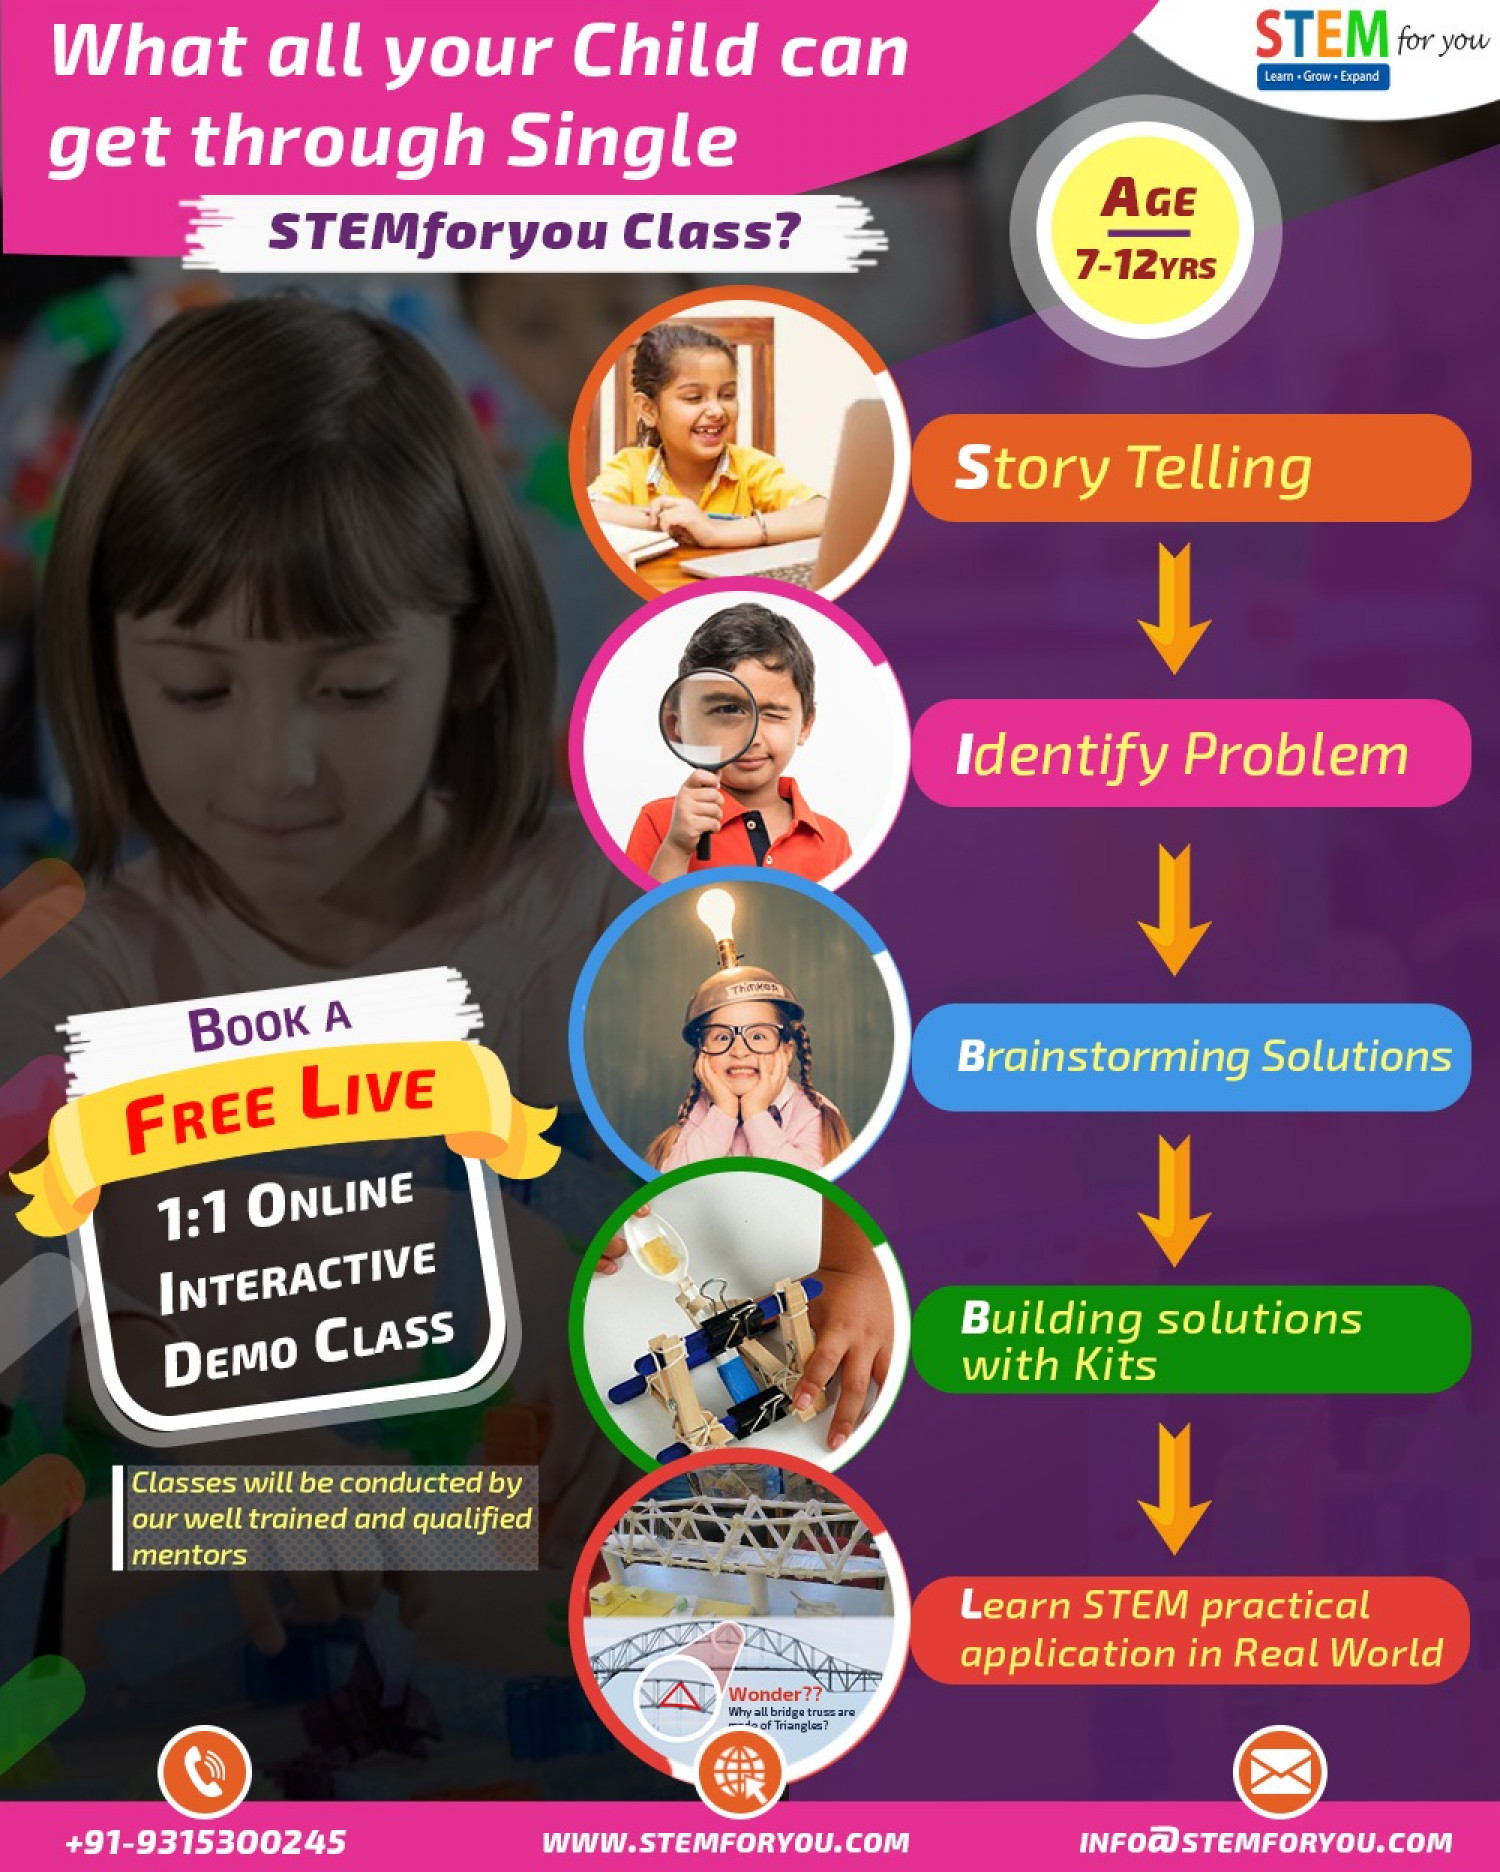 What all your child can get through a single STEMforyou class? Infographic